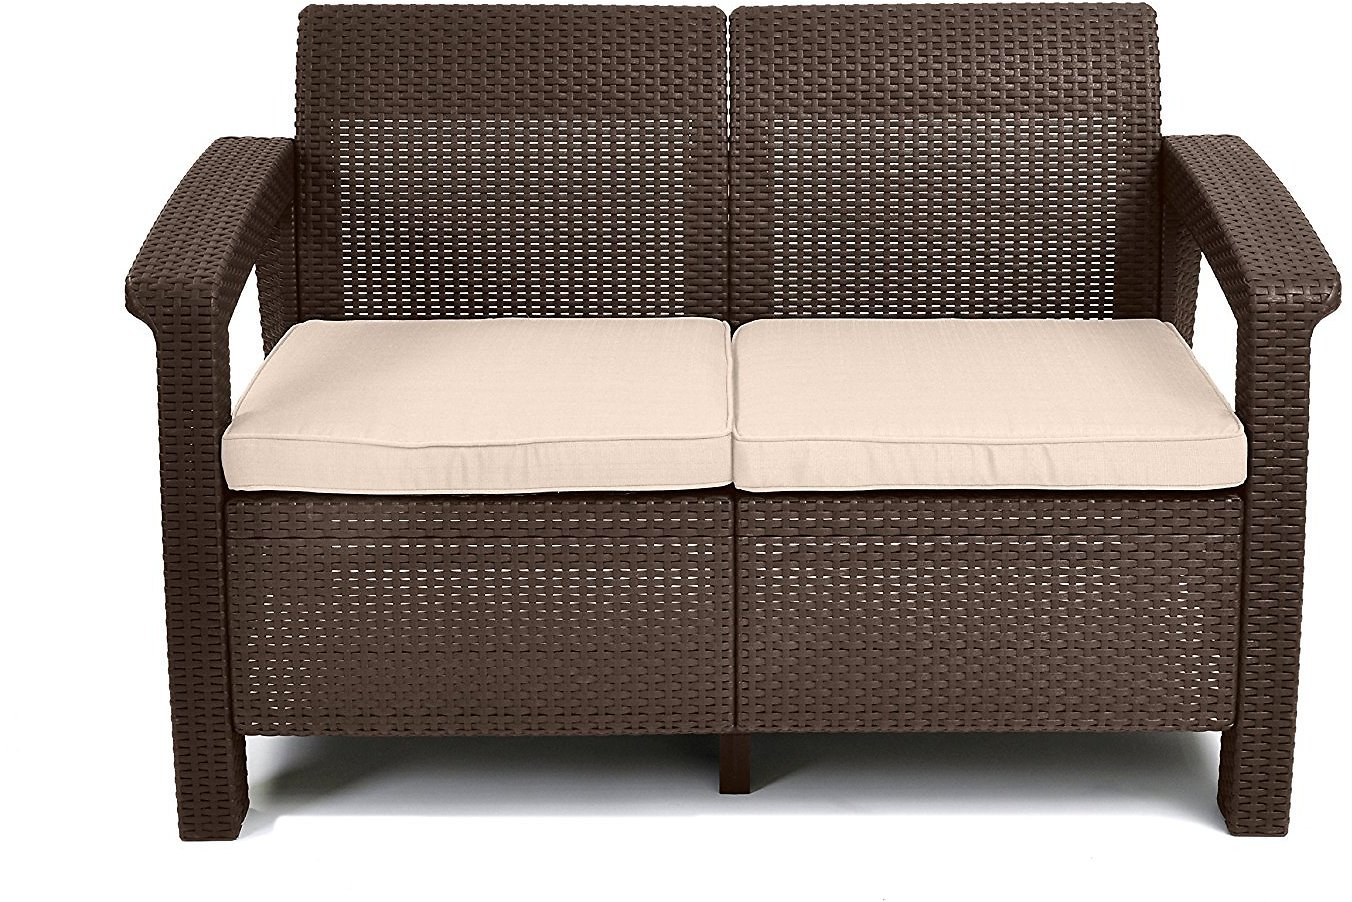 Keter Corfu Love Seat Outdoor Patio Furniture w/ Cushions ( DEAL OF THE DAY )